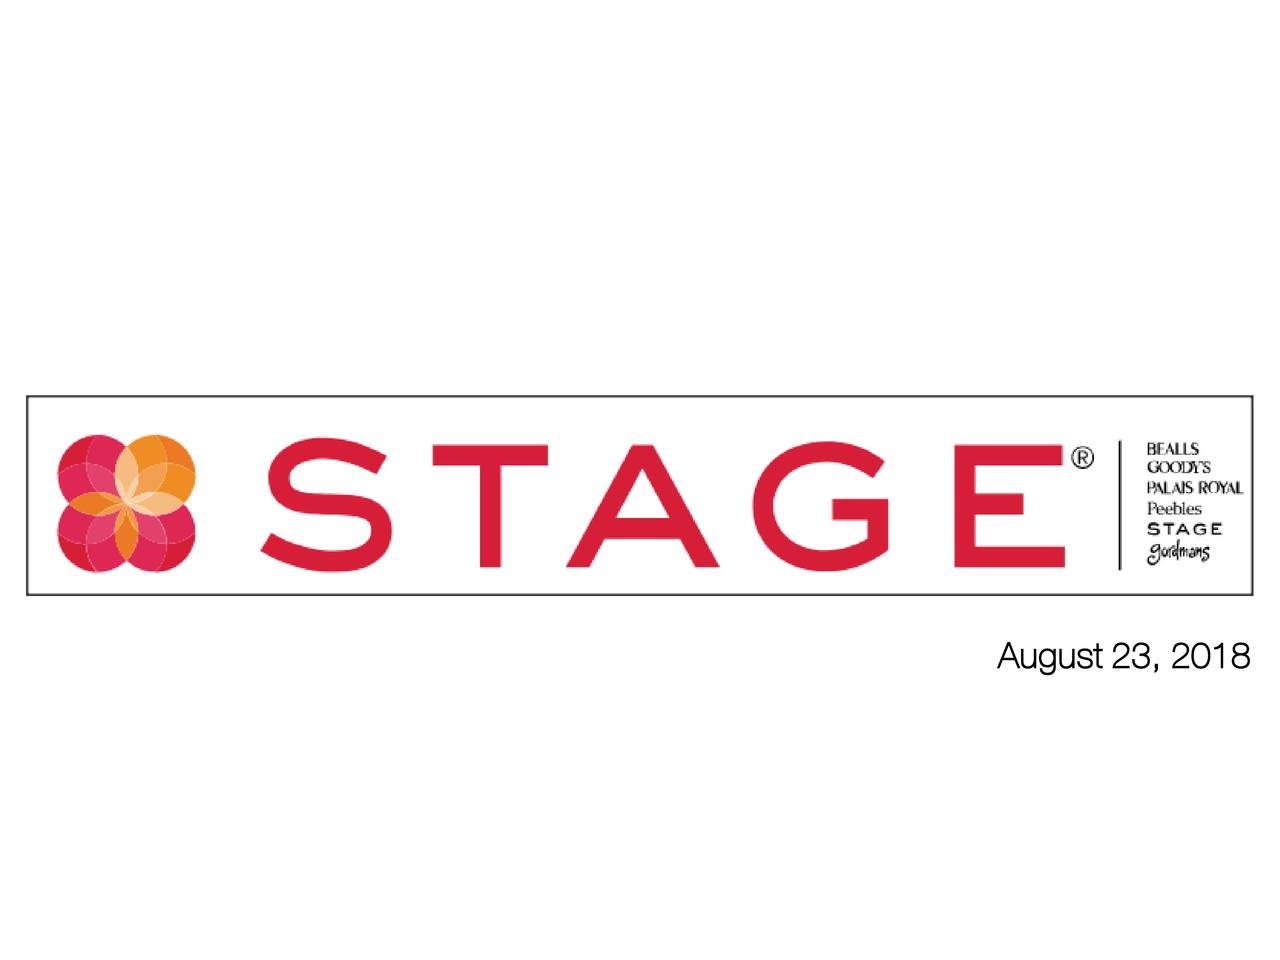 Stage Stores Inc 2018 Q2 Results Earnings Call Slides Stage